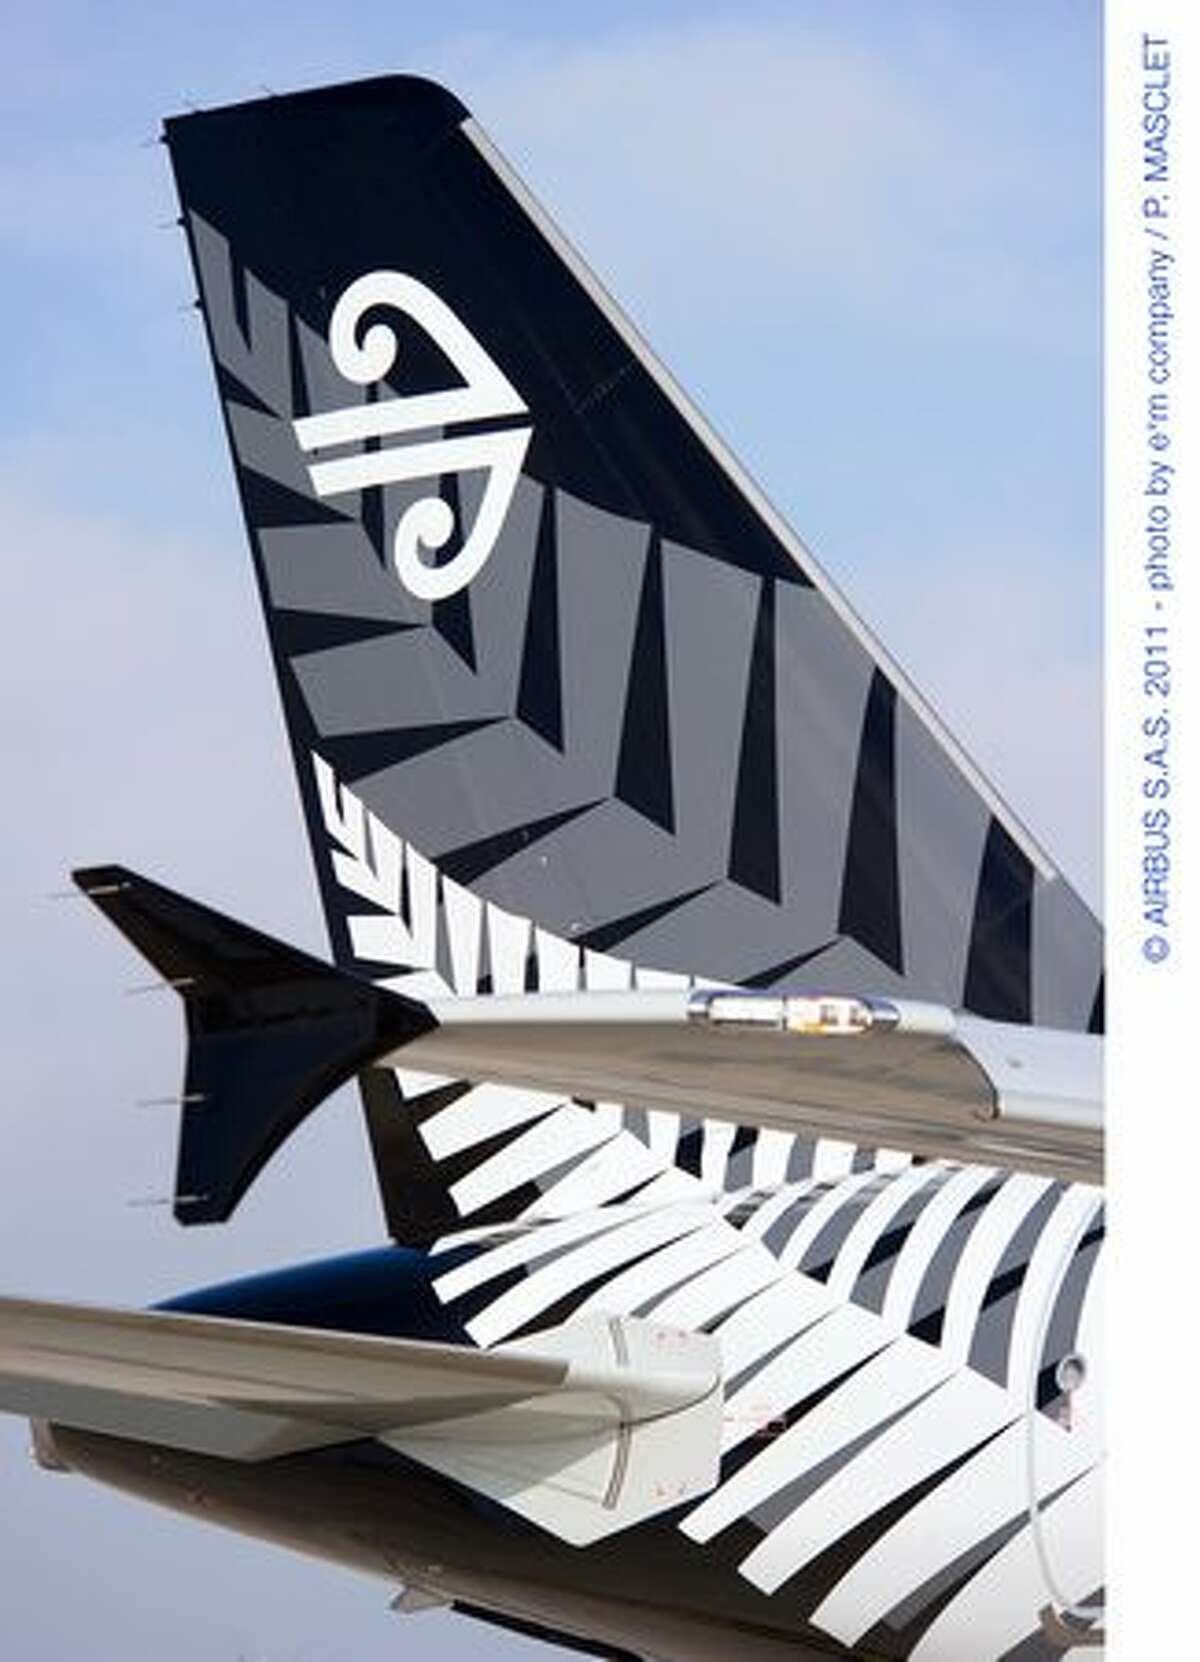 Air Lease Corp. takes delivery of the first of 51 ordered Airbus A320s, an Air New Zealand airliner in the colors of New Zealand's All Blacks rugby team.